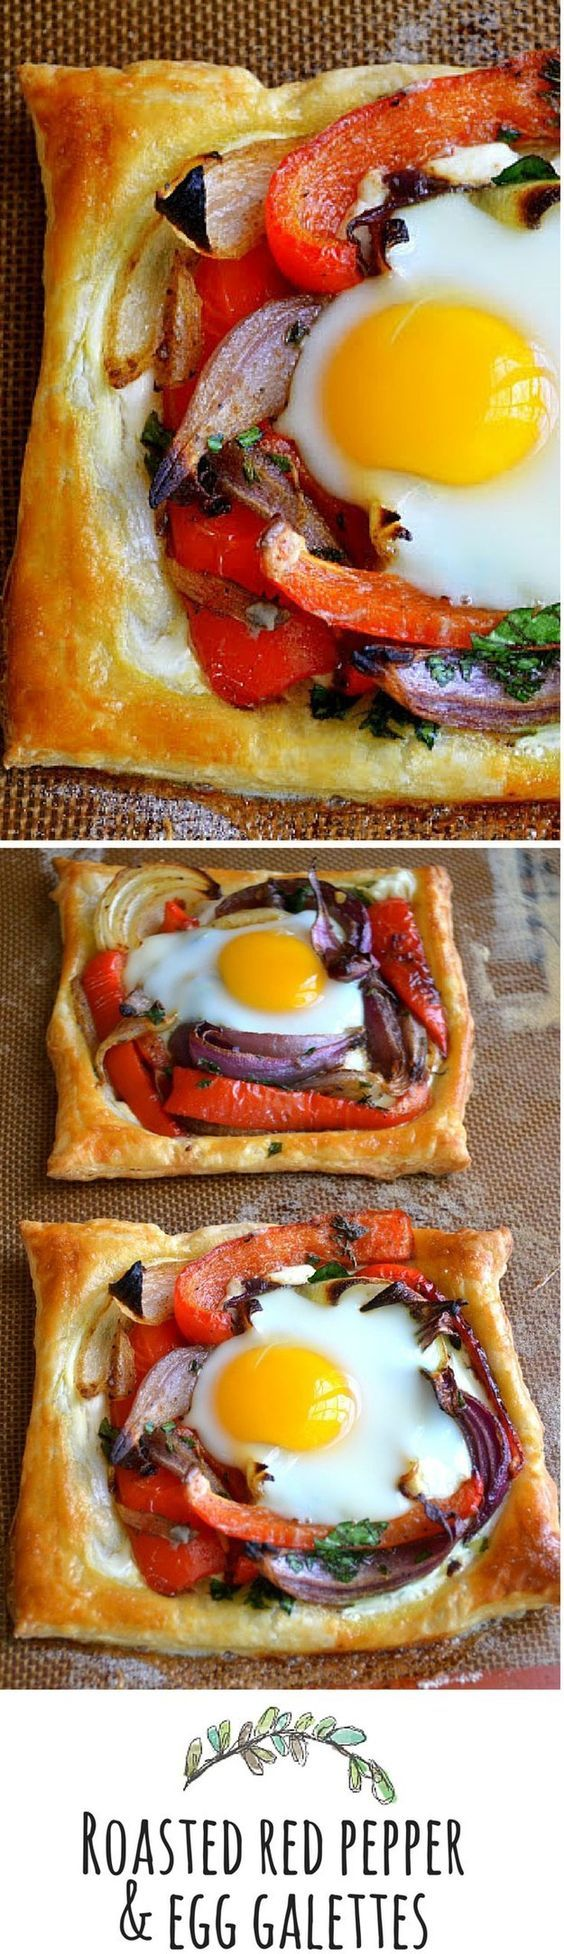 This looks suspiciously like pizza, which would be the worst way to start your day. | 23 Reasons To Never Eat Breakfast